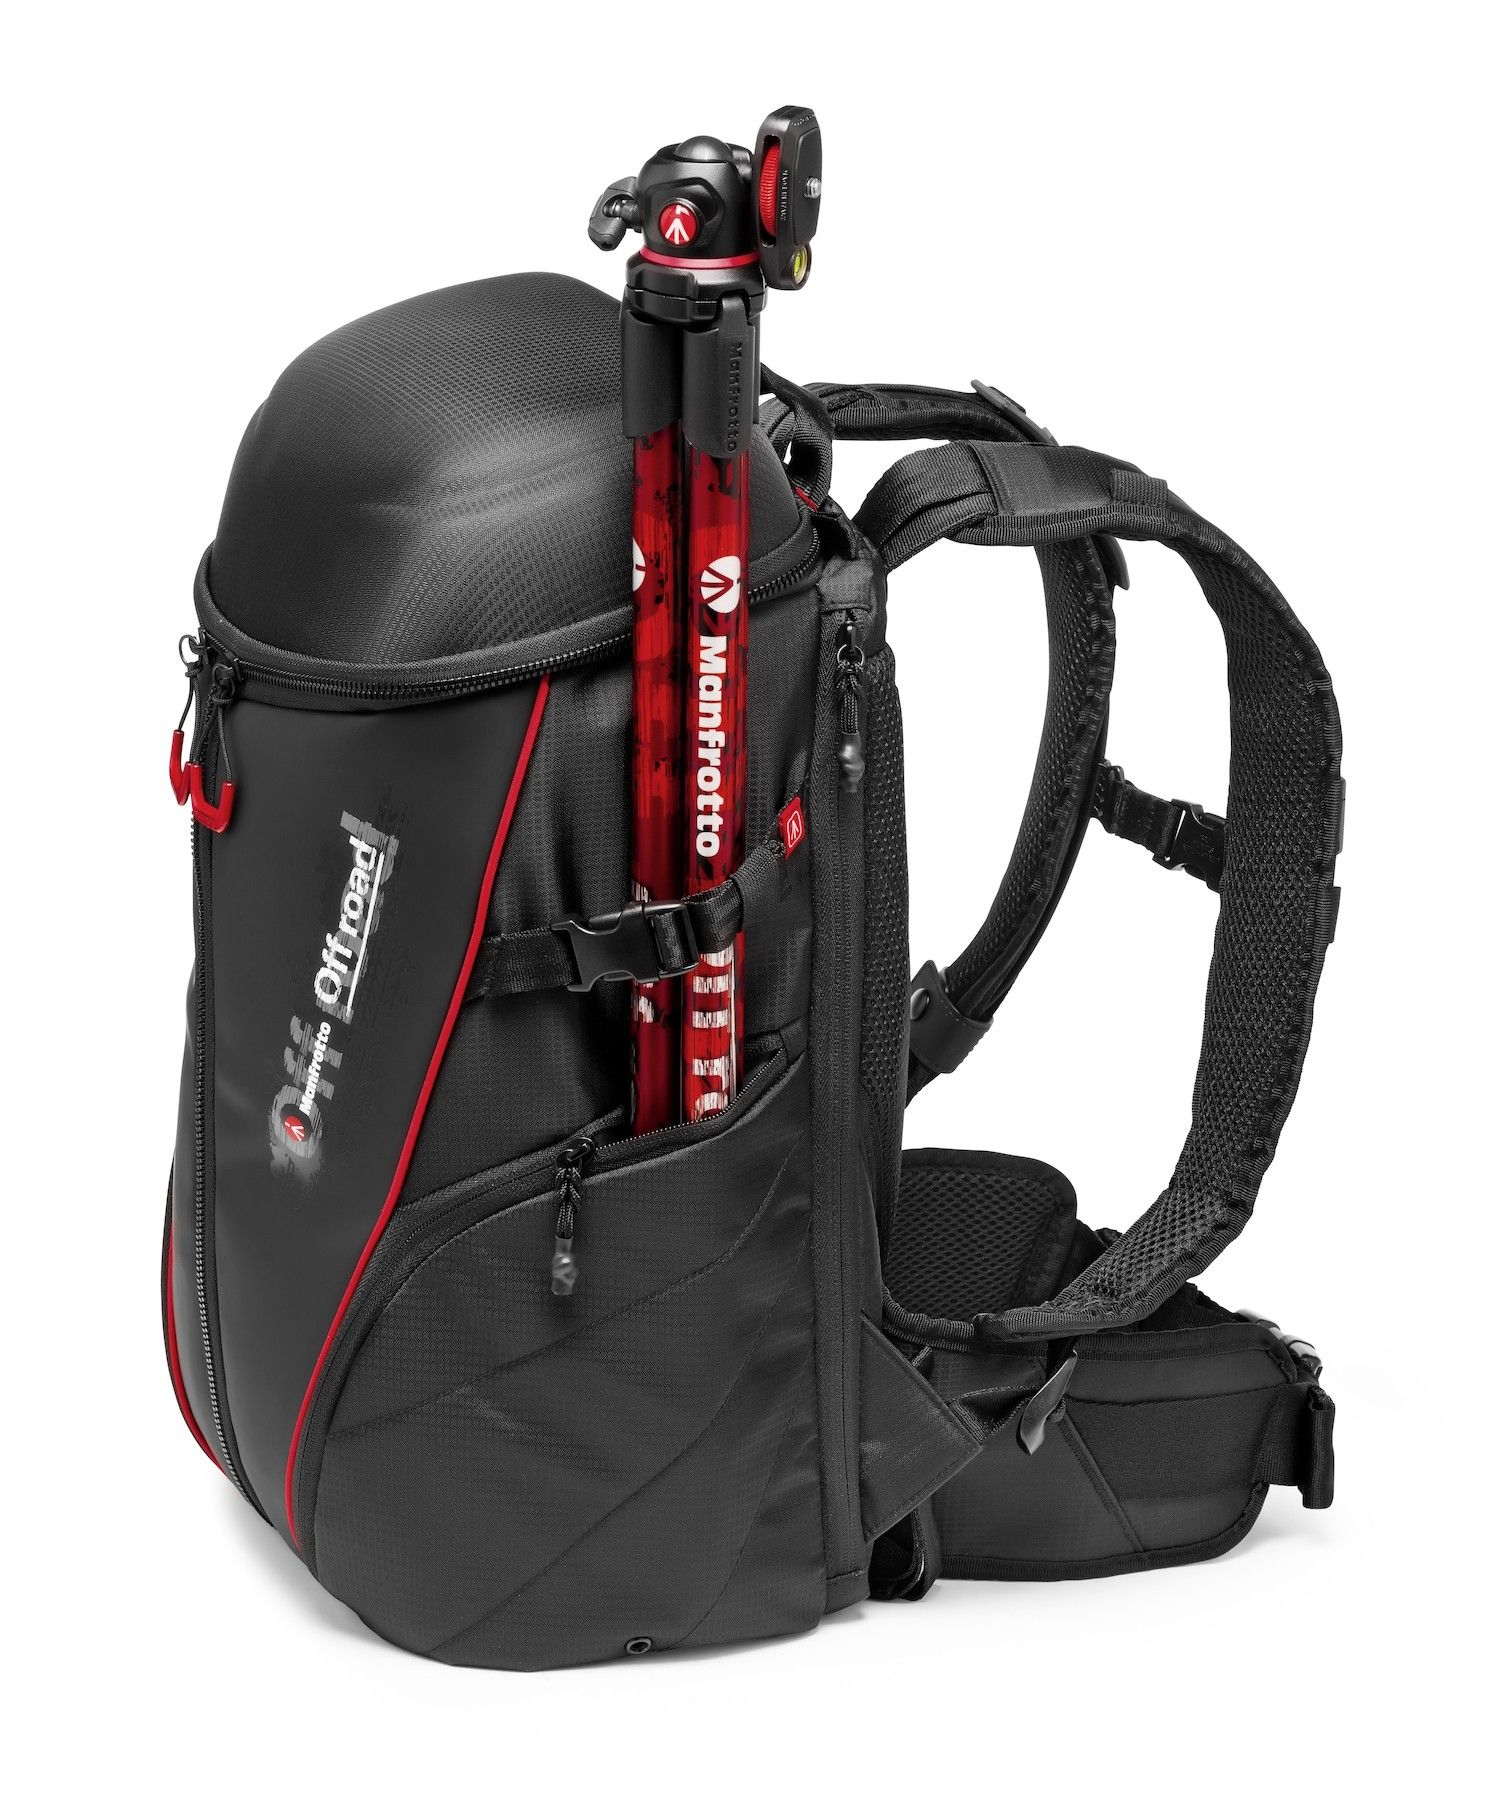 The Manfrotto Off road Stunt action camera backpack is the perfect  companion for your extreme activities. Thanks to the removable internal  protective ... fb4a903adc039